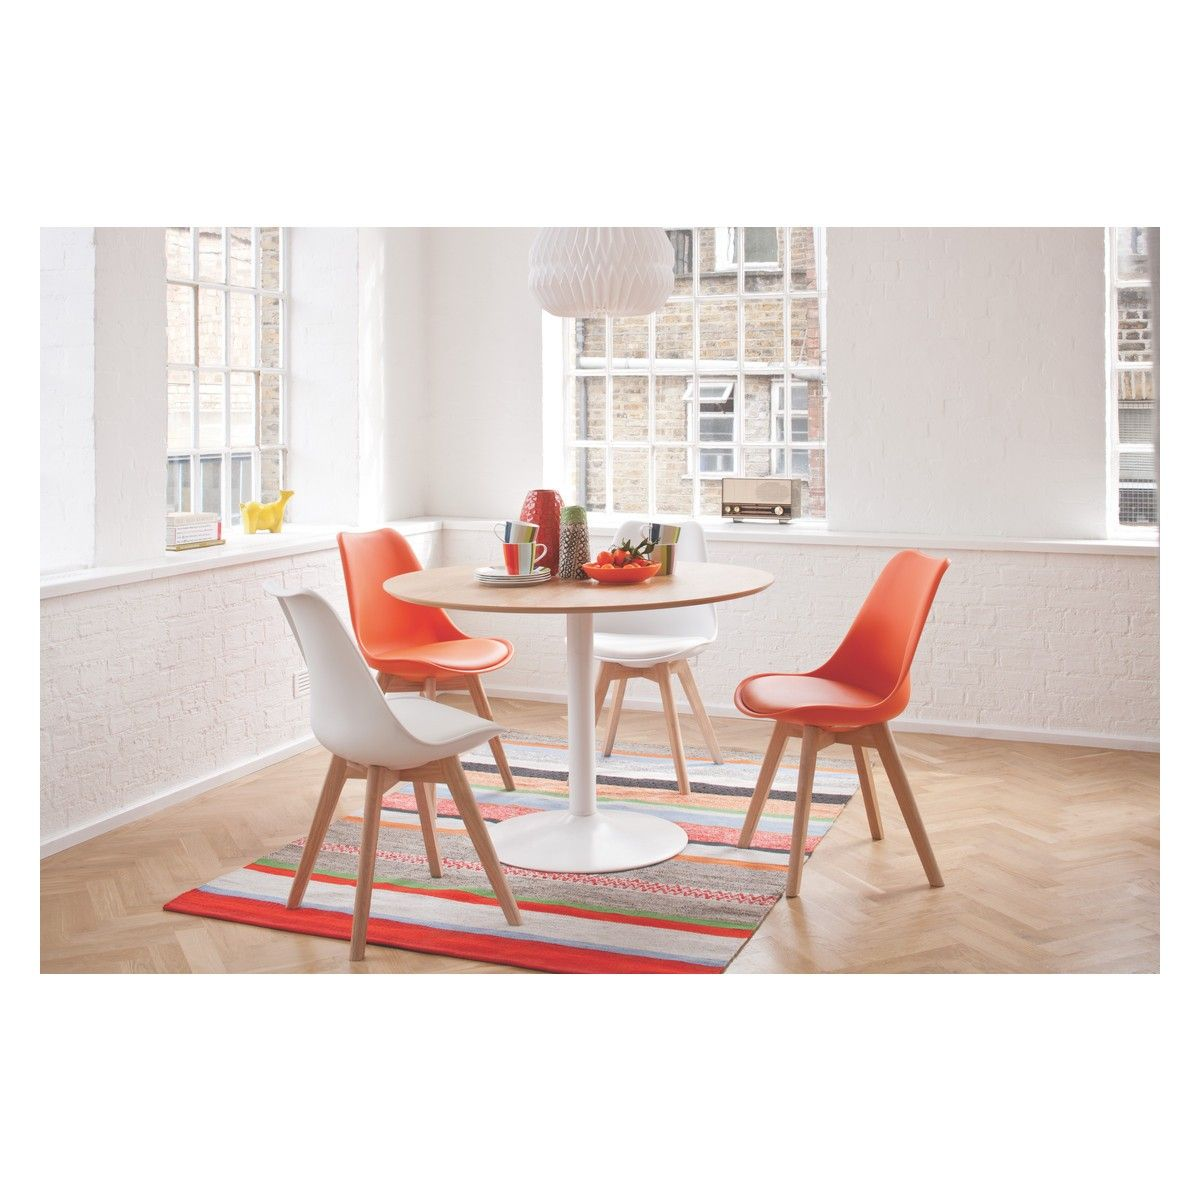 Lance 4 Seater Oak Veneer Round Dining Table  Dinig Area Classy Orange Dining Room Table Review